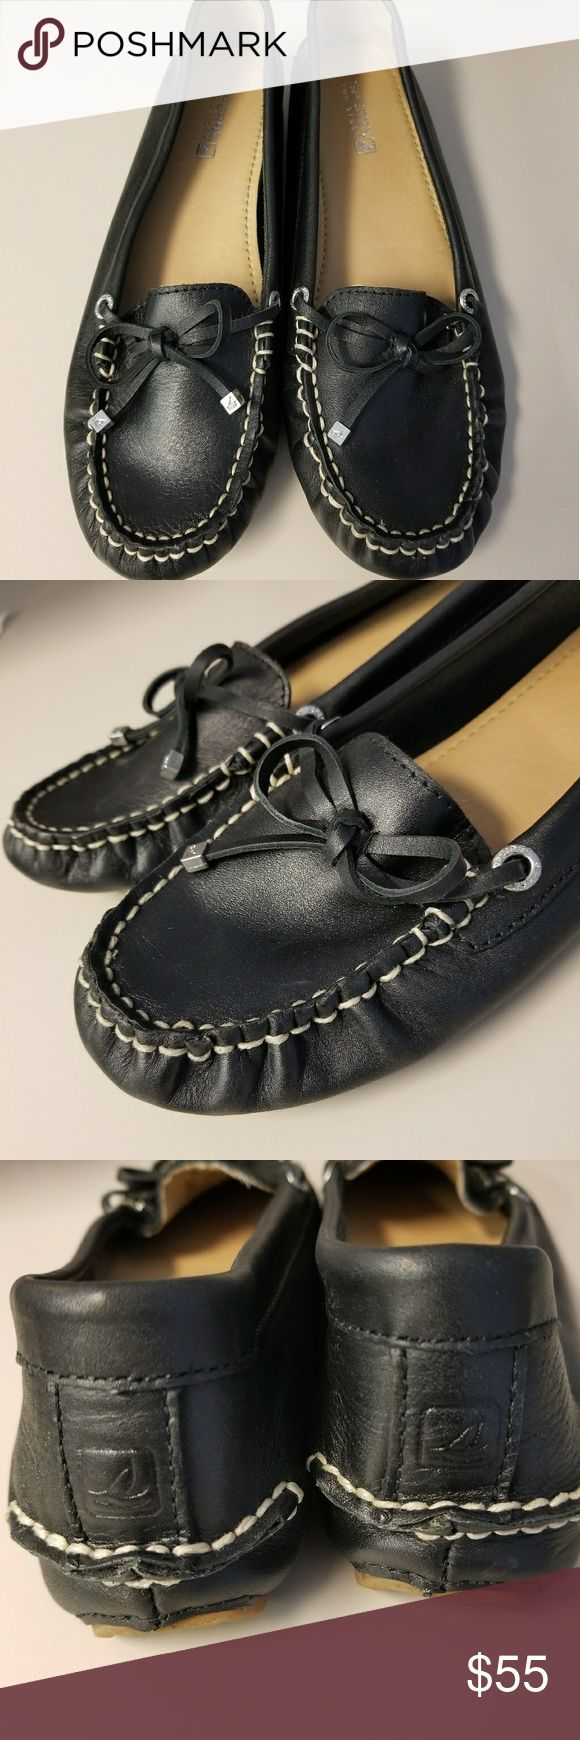 New Leather Sperry Loafers Brand new soft Black Leather Sperry Loafers ...only tried on..size 7M but fit more like a 6 to 6.5. Very comfy! Great for Fall!! FLAWLESS! Sperry Shoes Flats & Loafers